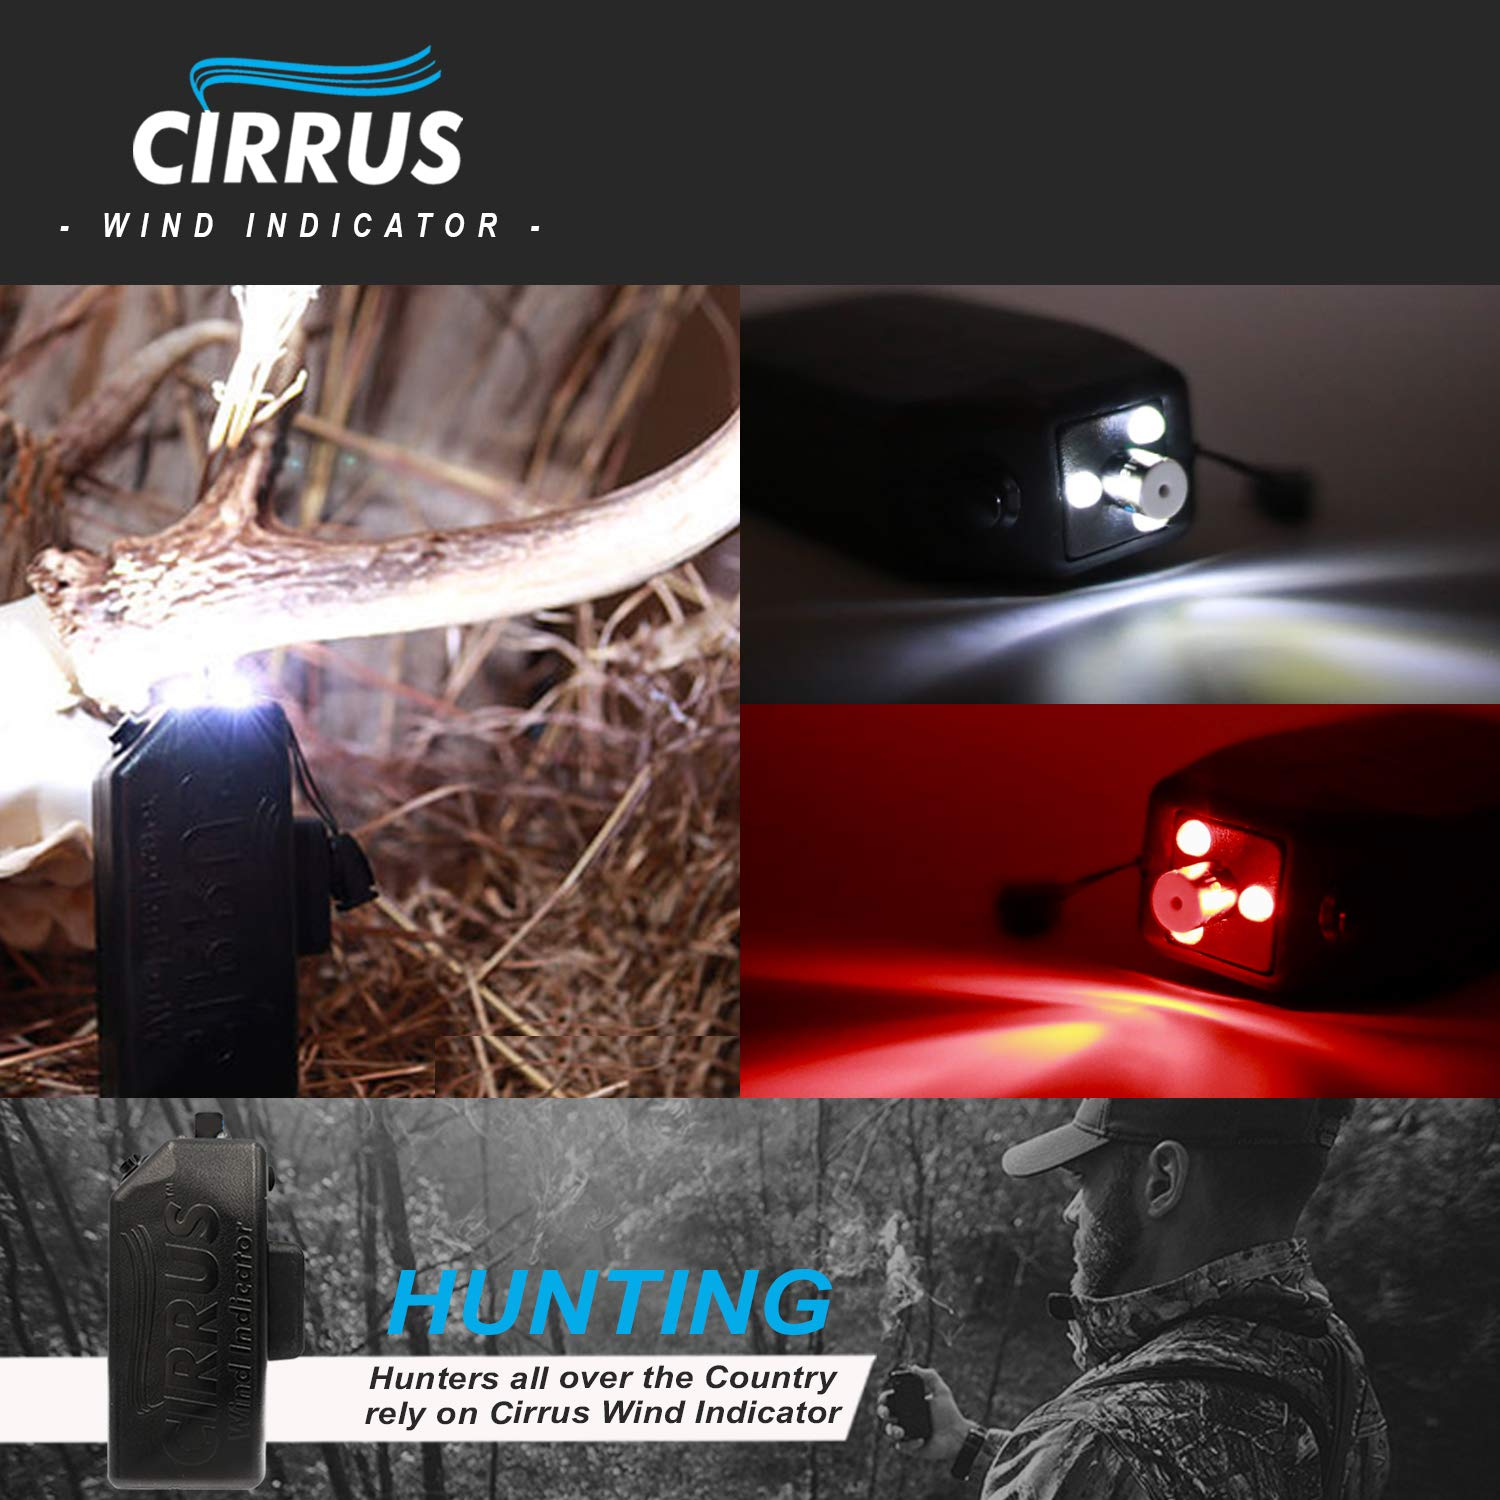 Cirrus Wind Indicator for Hunting - The Perfect Wind Checker Alternative to Messy Powder by Cirrus (Image #5)